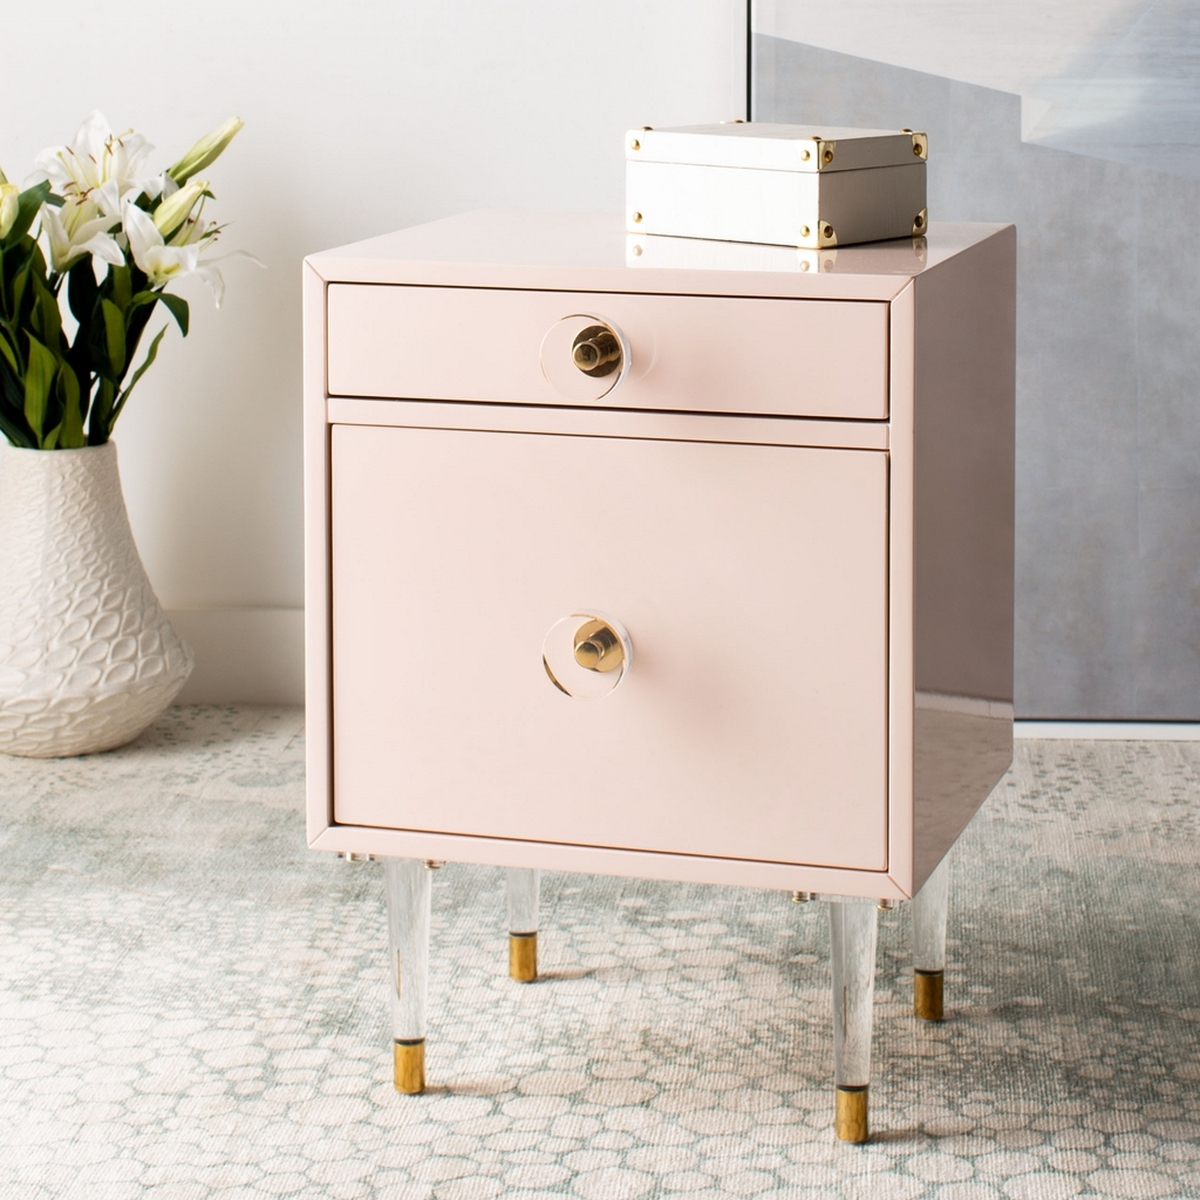 safavieh-sfv3568a-harry-side-table-nightstand-pink-clear-acrylic-lucite-leg-storage.jpg